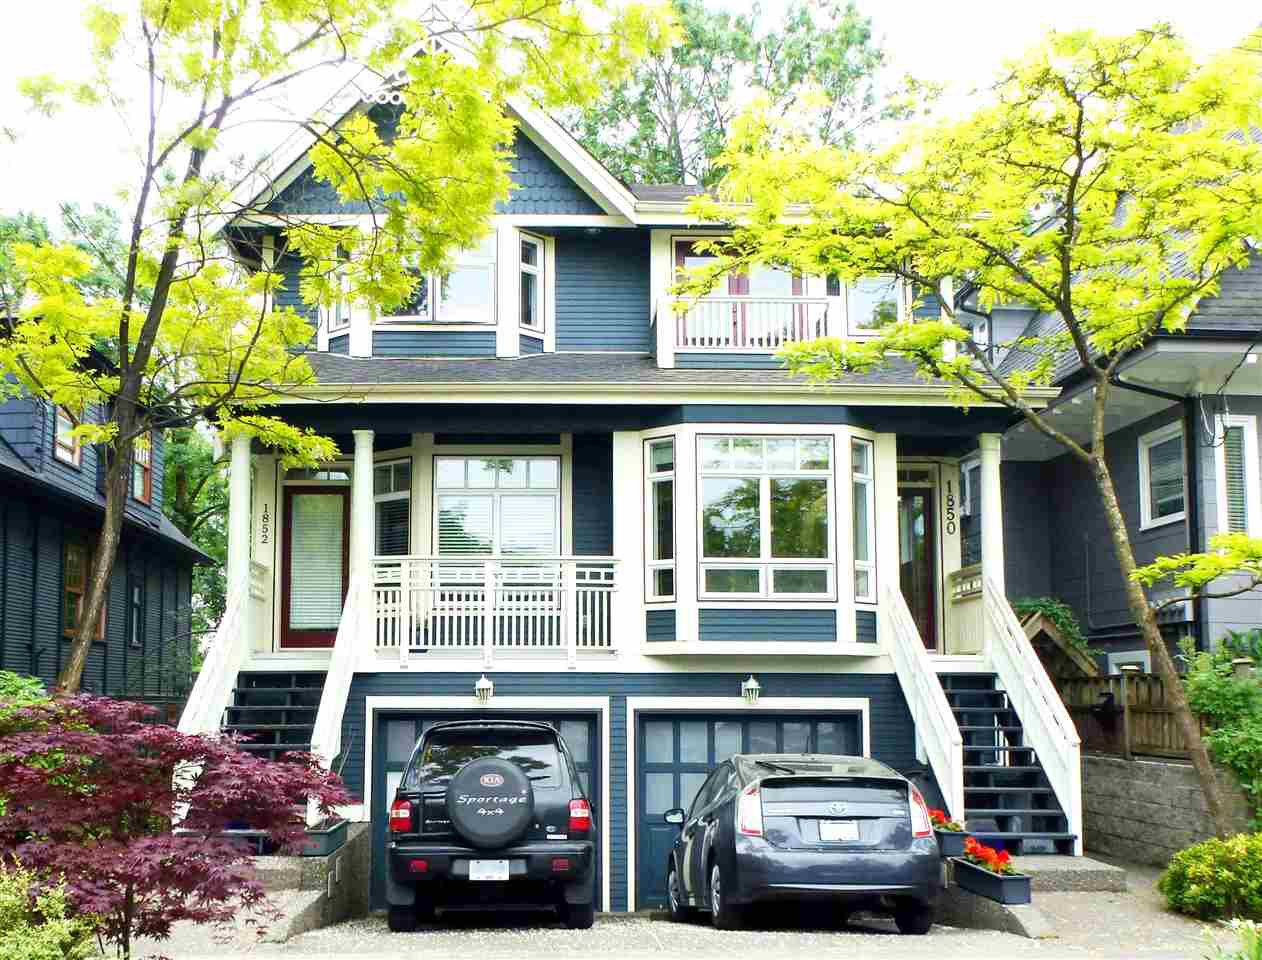 Main Photo: 1850 GRANT Street in Vancouver: Grandview VE House 1/2 Duplex for sale (Vancouver East)  : MLS®# R2069613